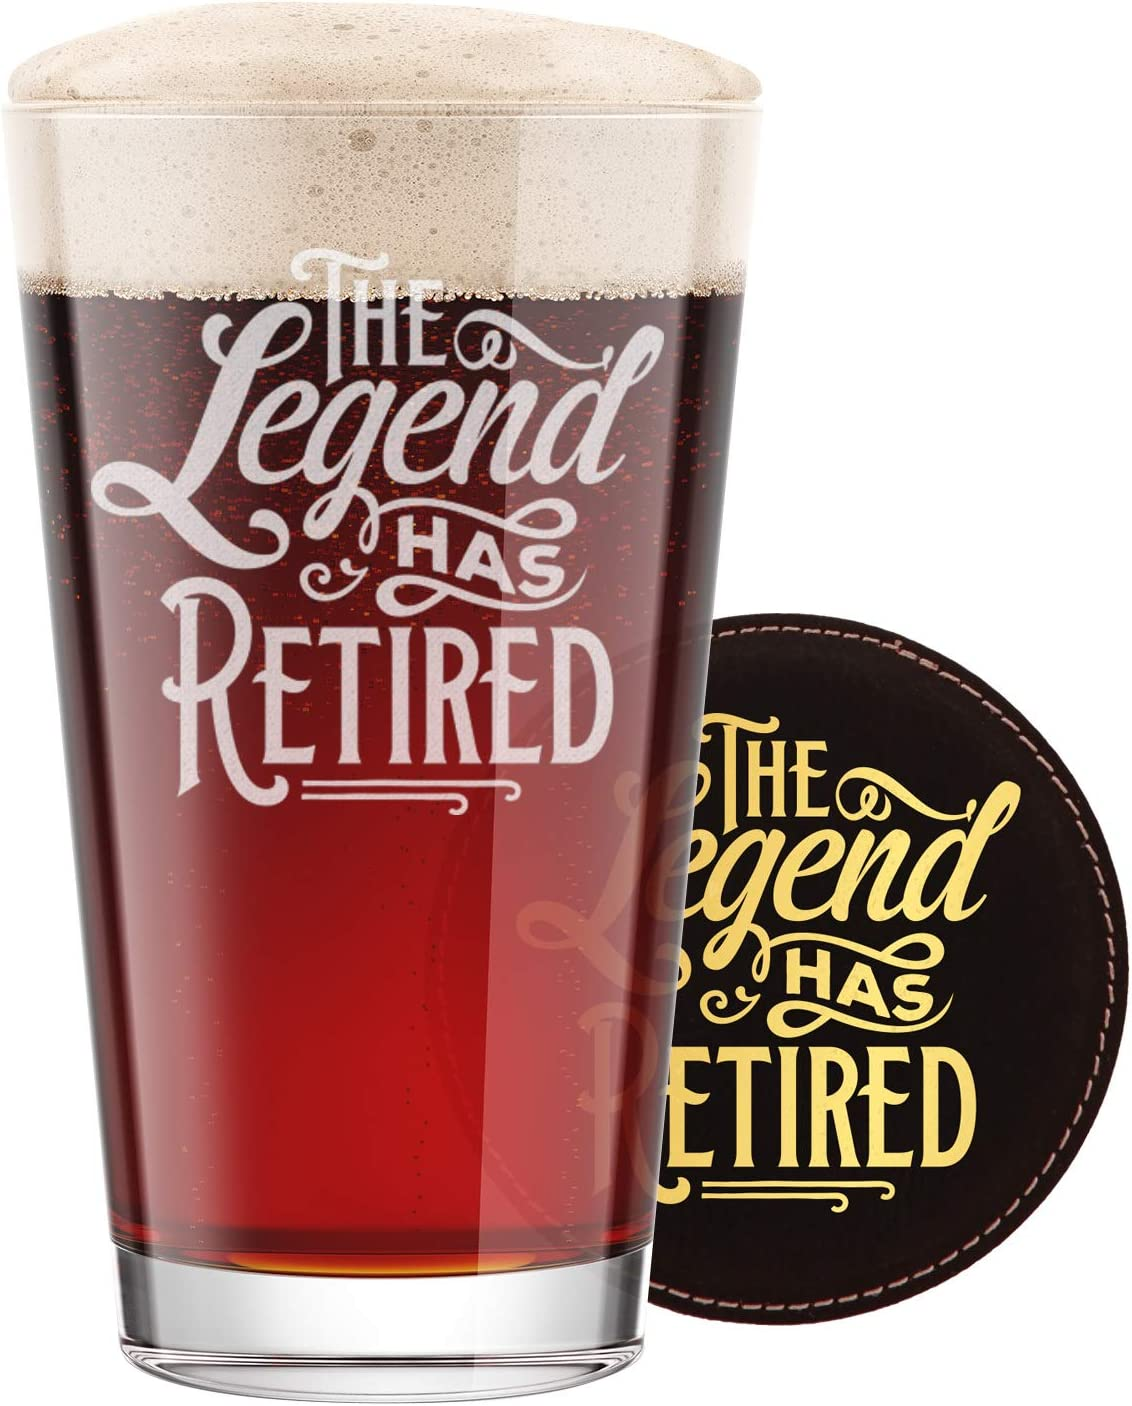 BadBananas The Legend Has Retired - Funny Retirement Gifts For Men - 16 oz Engraved Pint Beer Glass with Etched Coaster - Retiring Gift Present for Men Women Boss Coworker